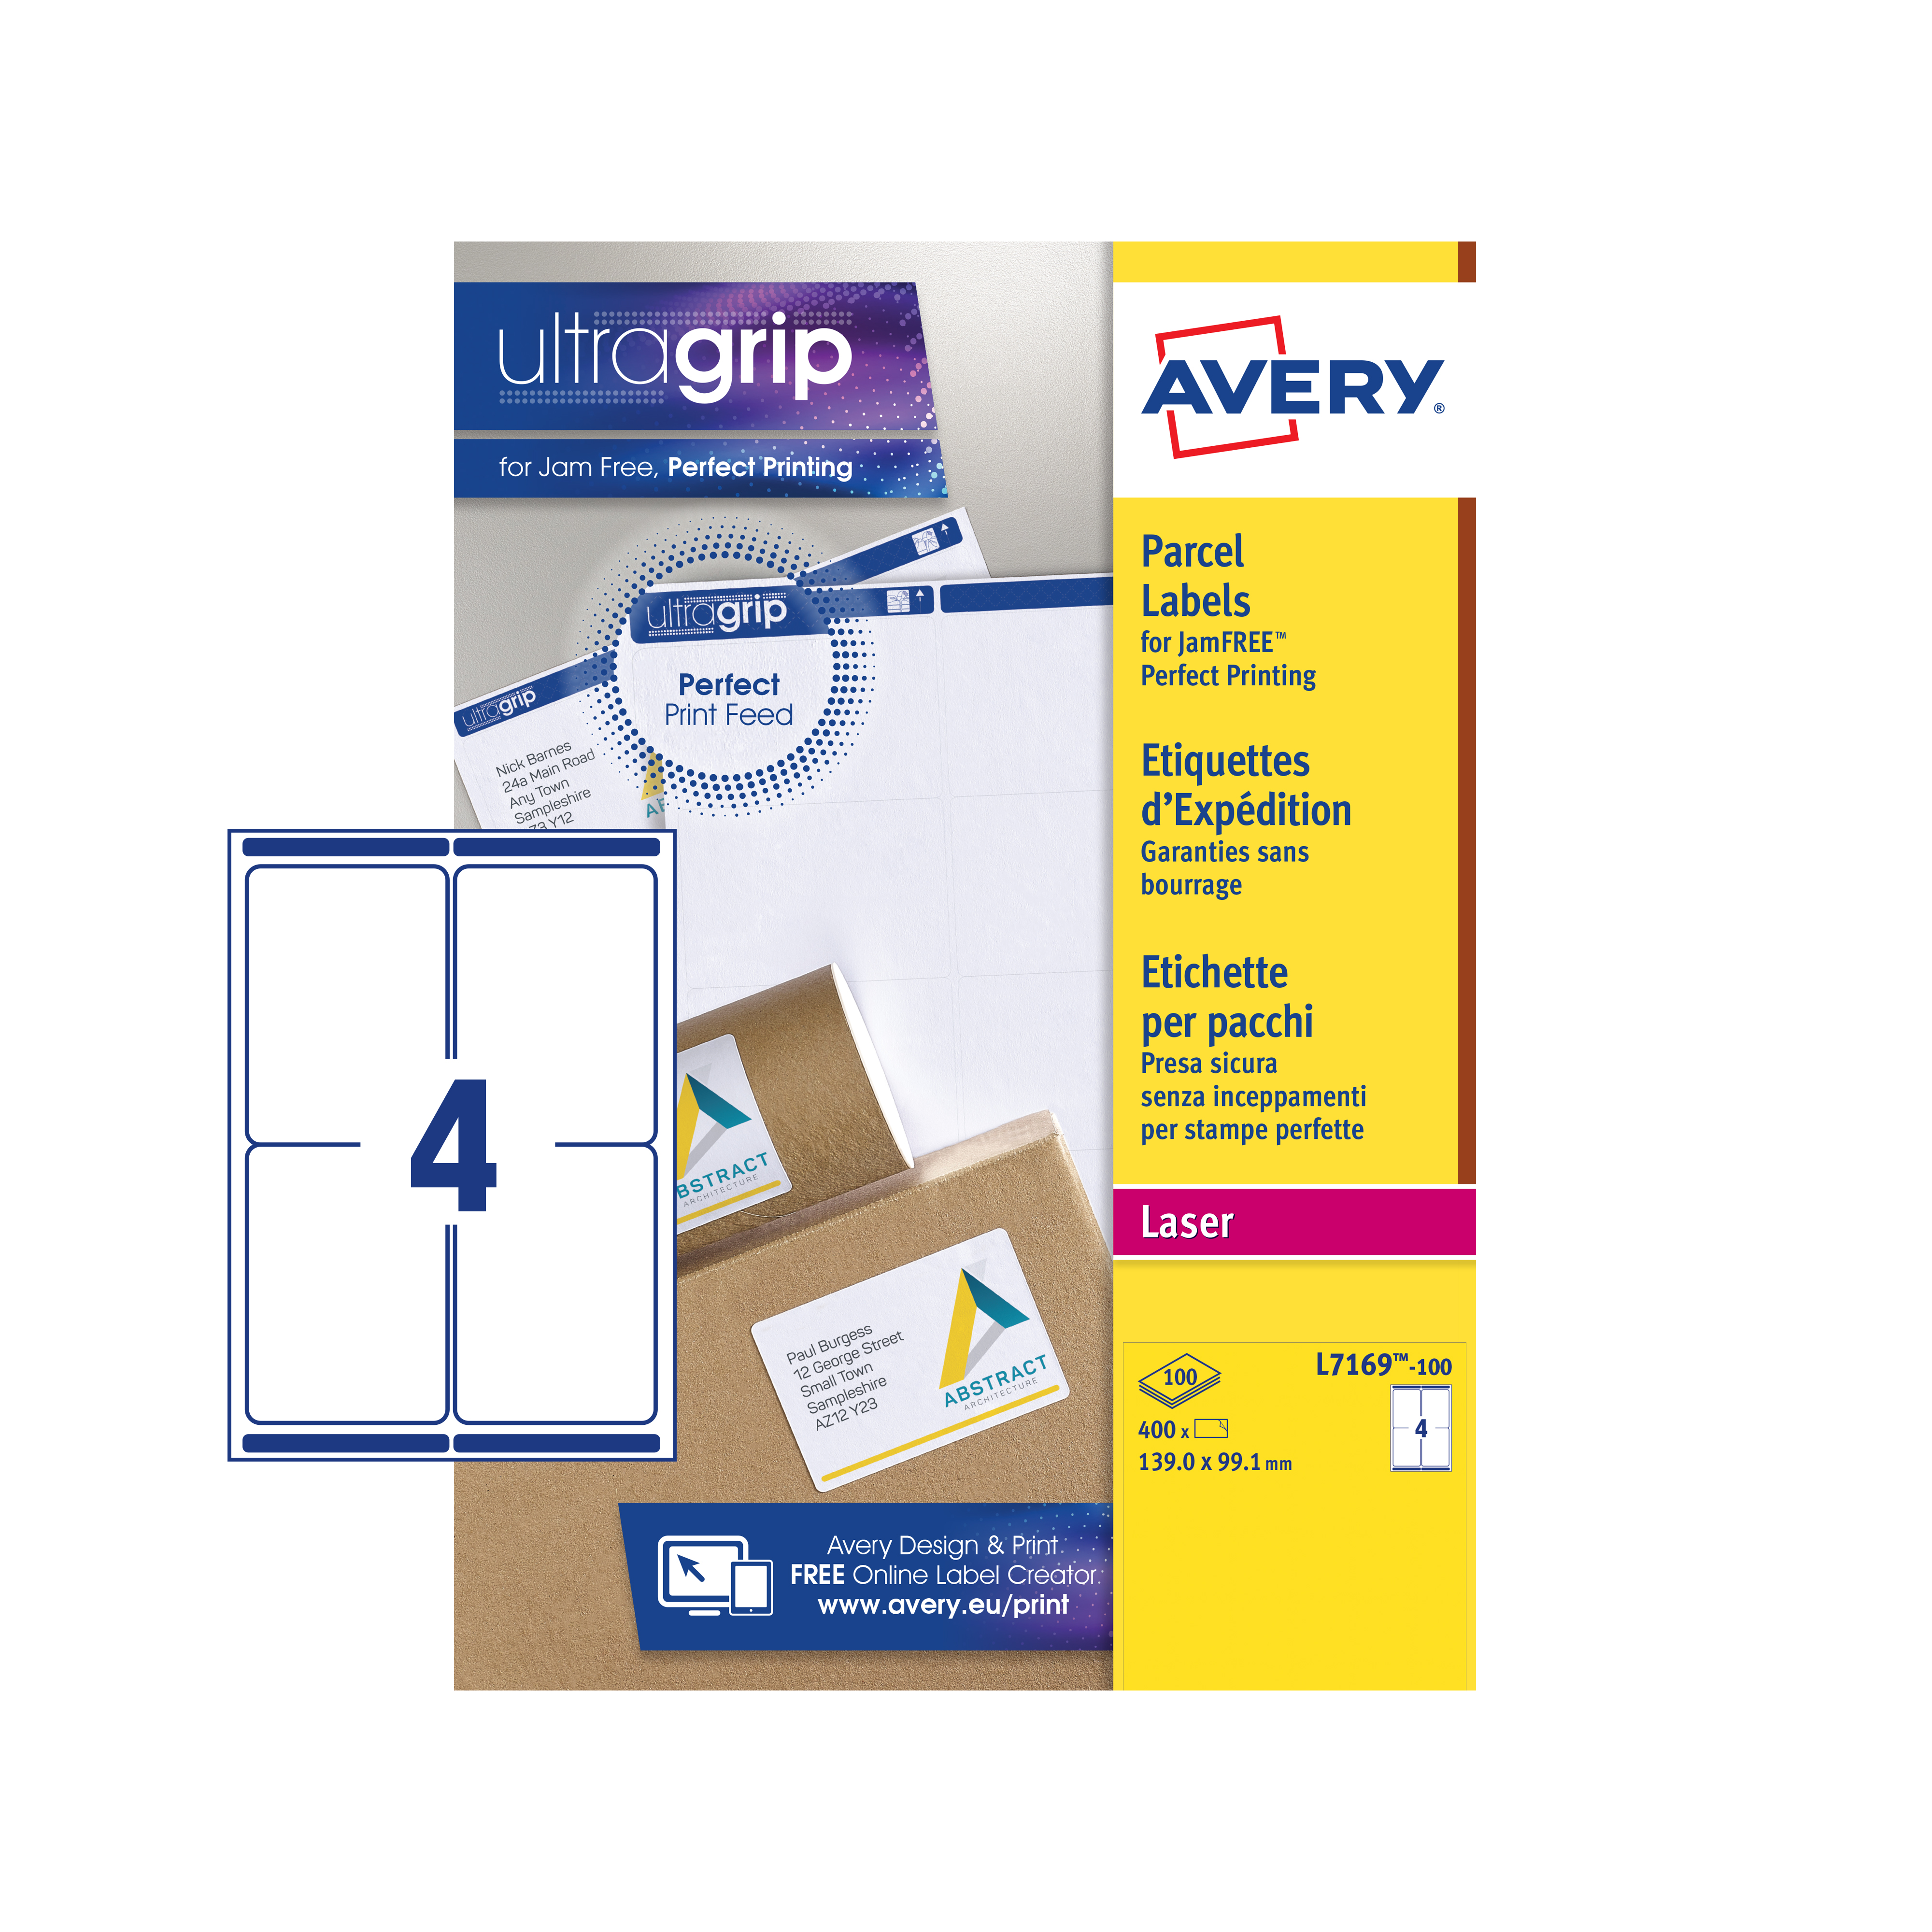 Avery Parcel Labels Laser Jam-free 4 per Sheet 139x99.1mm Opaque White Ref L7169-100 400 Labels